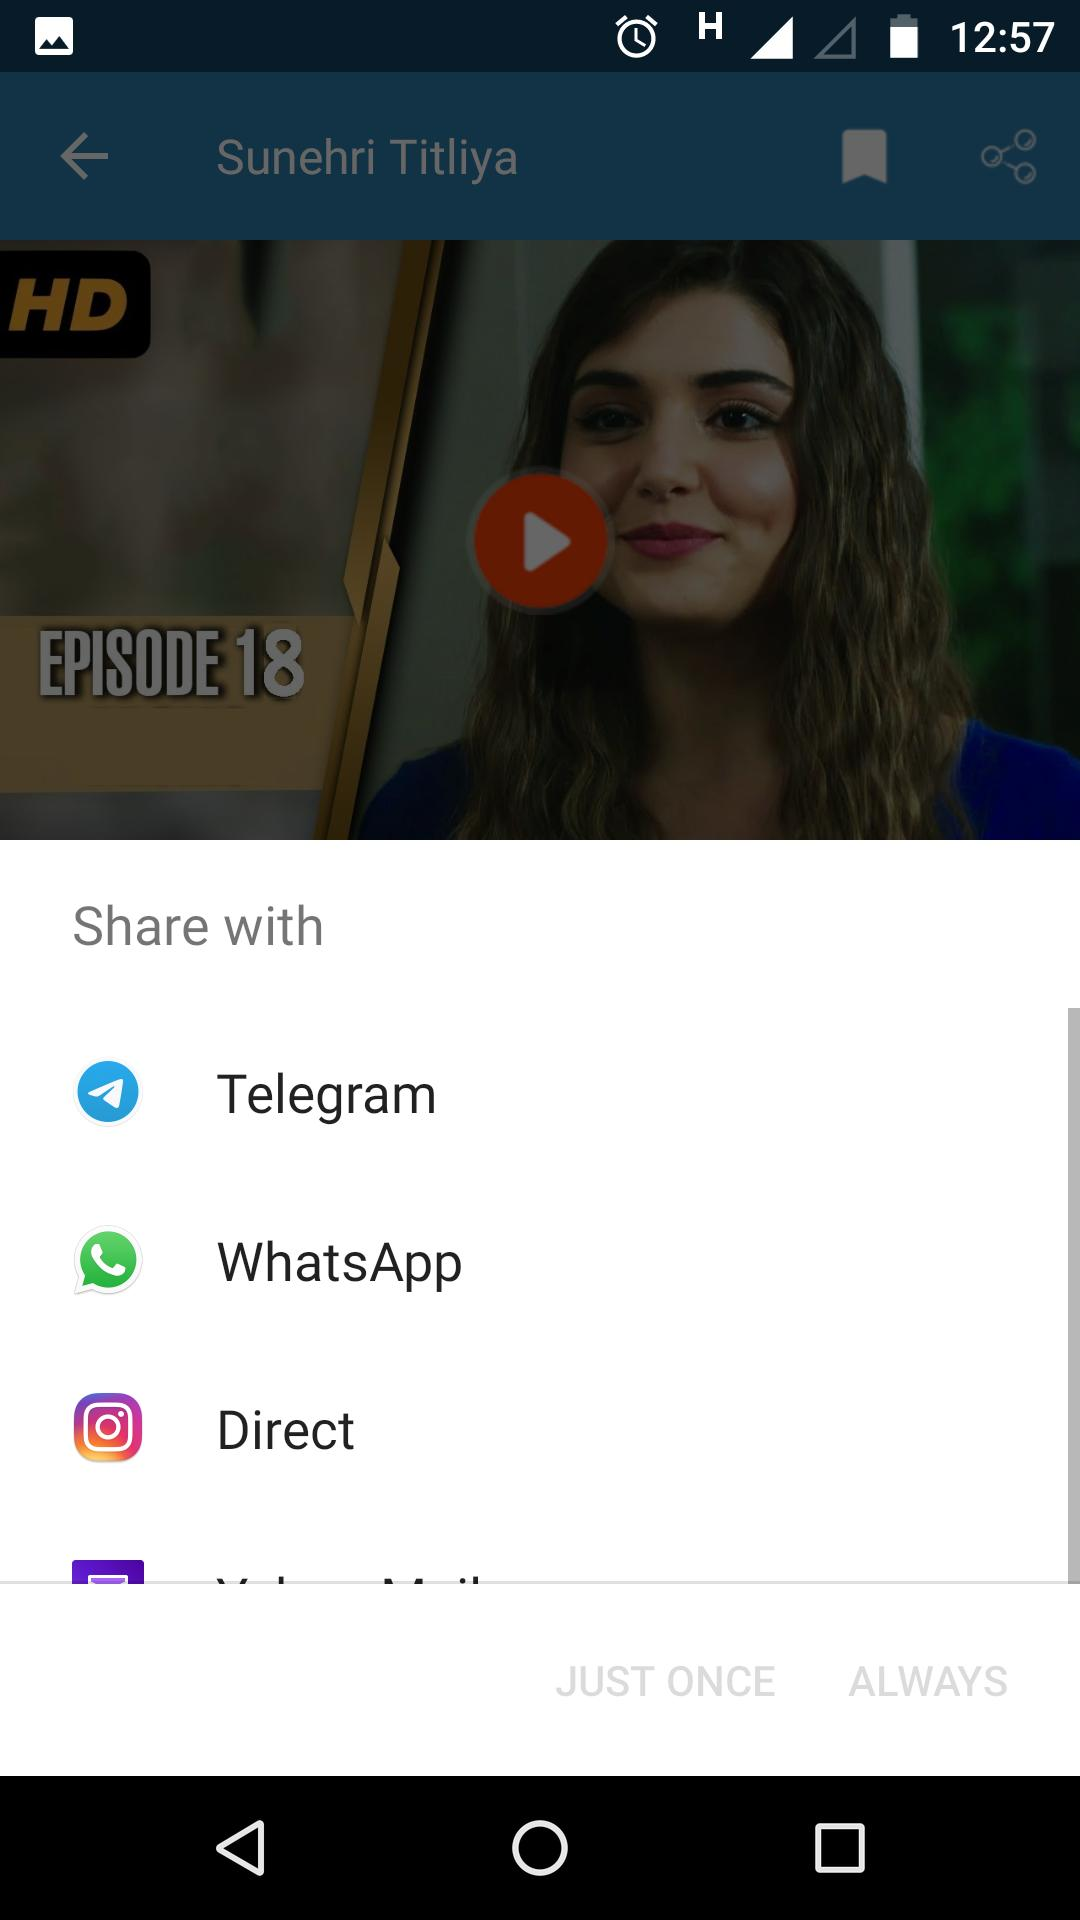 Sunehri Titliyan Turkish Drama in Hindi for Android - APK Download